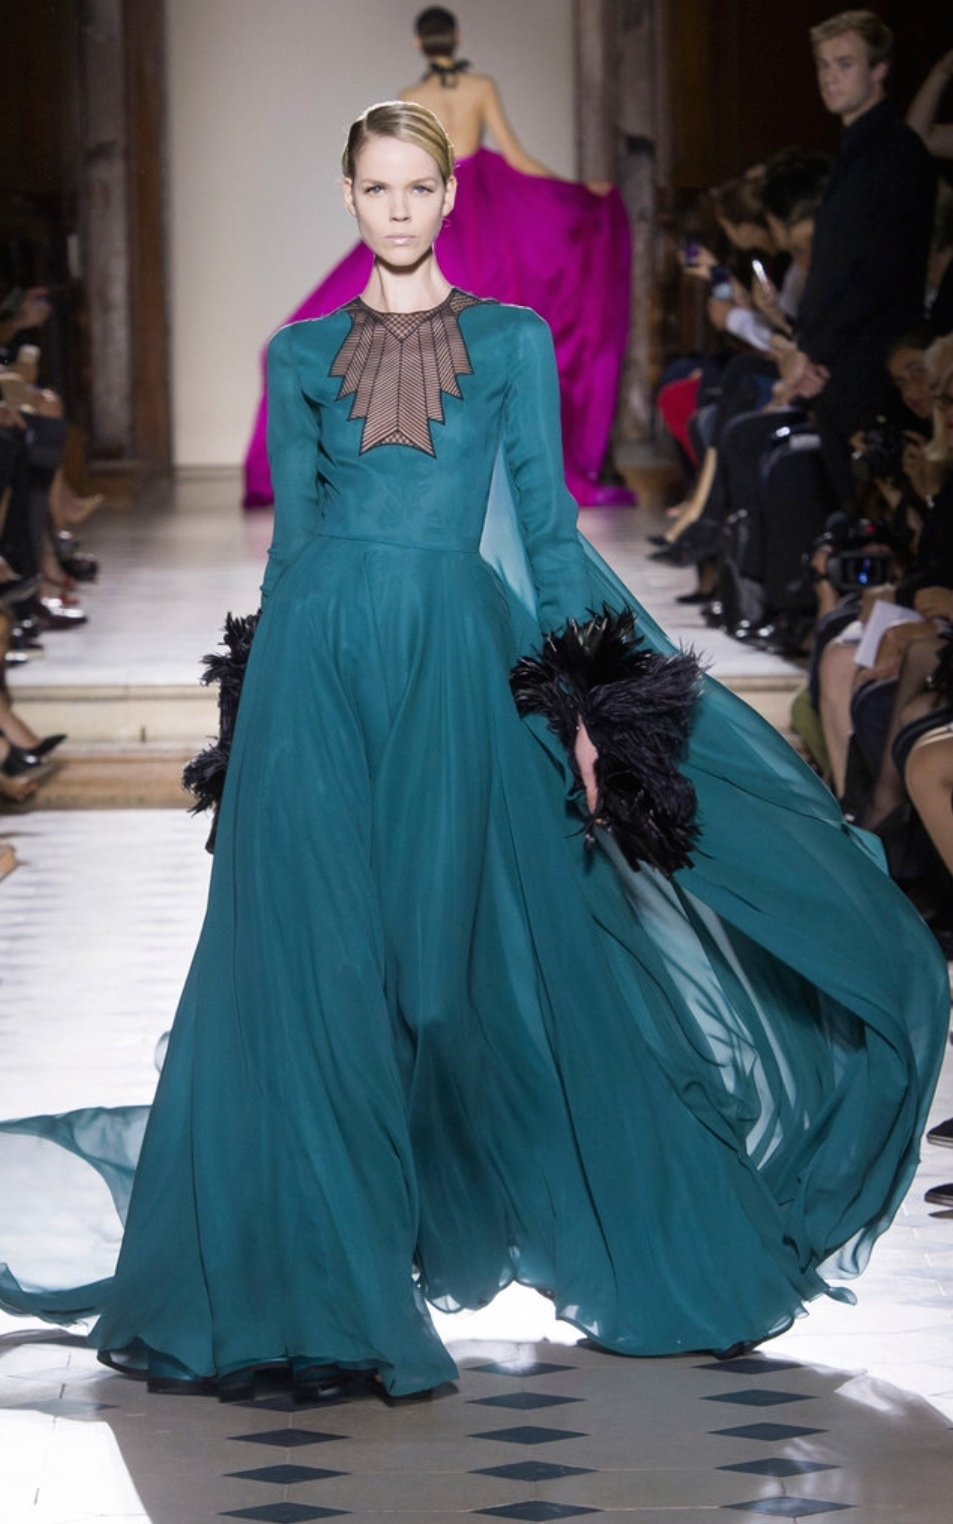 Julien Fournié infused art deco glamour into this gown at the neckline and the feathered cuffs.